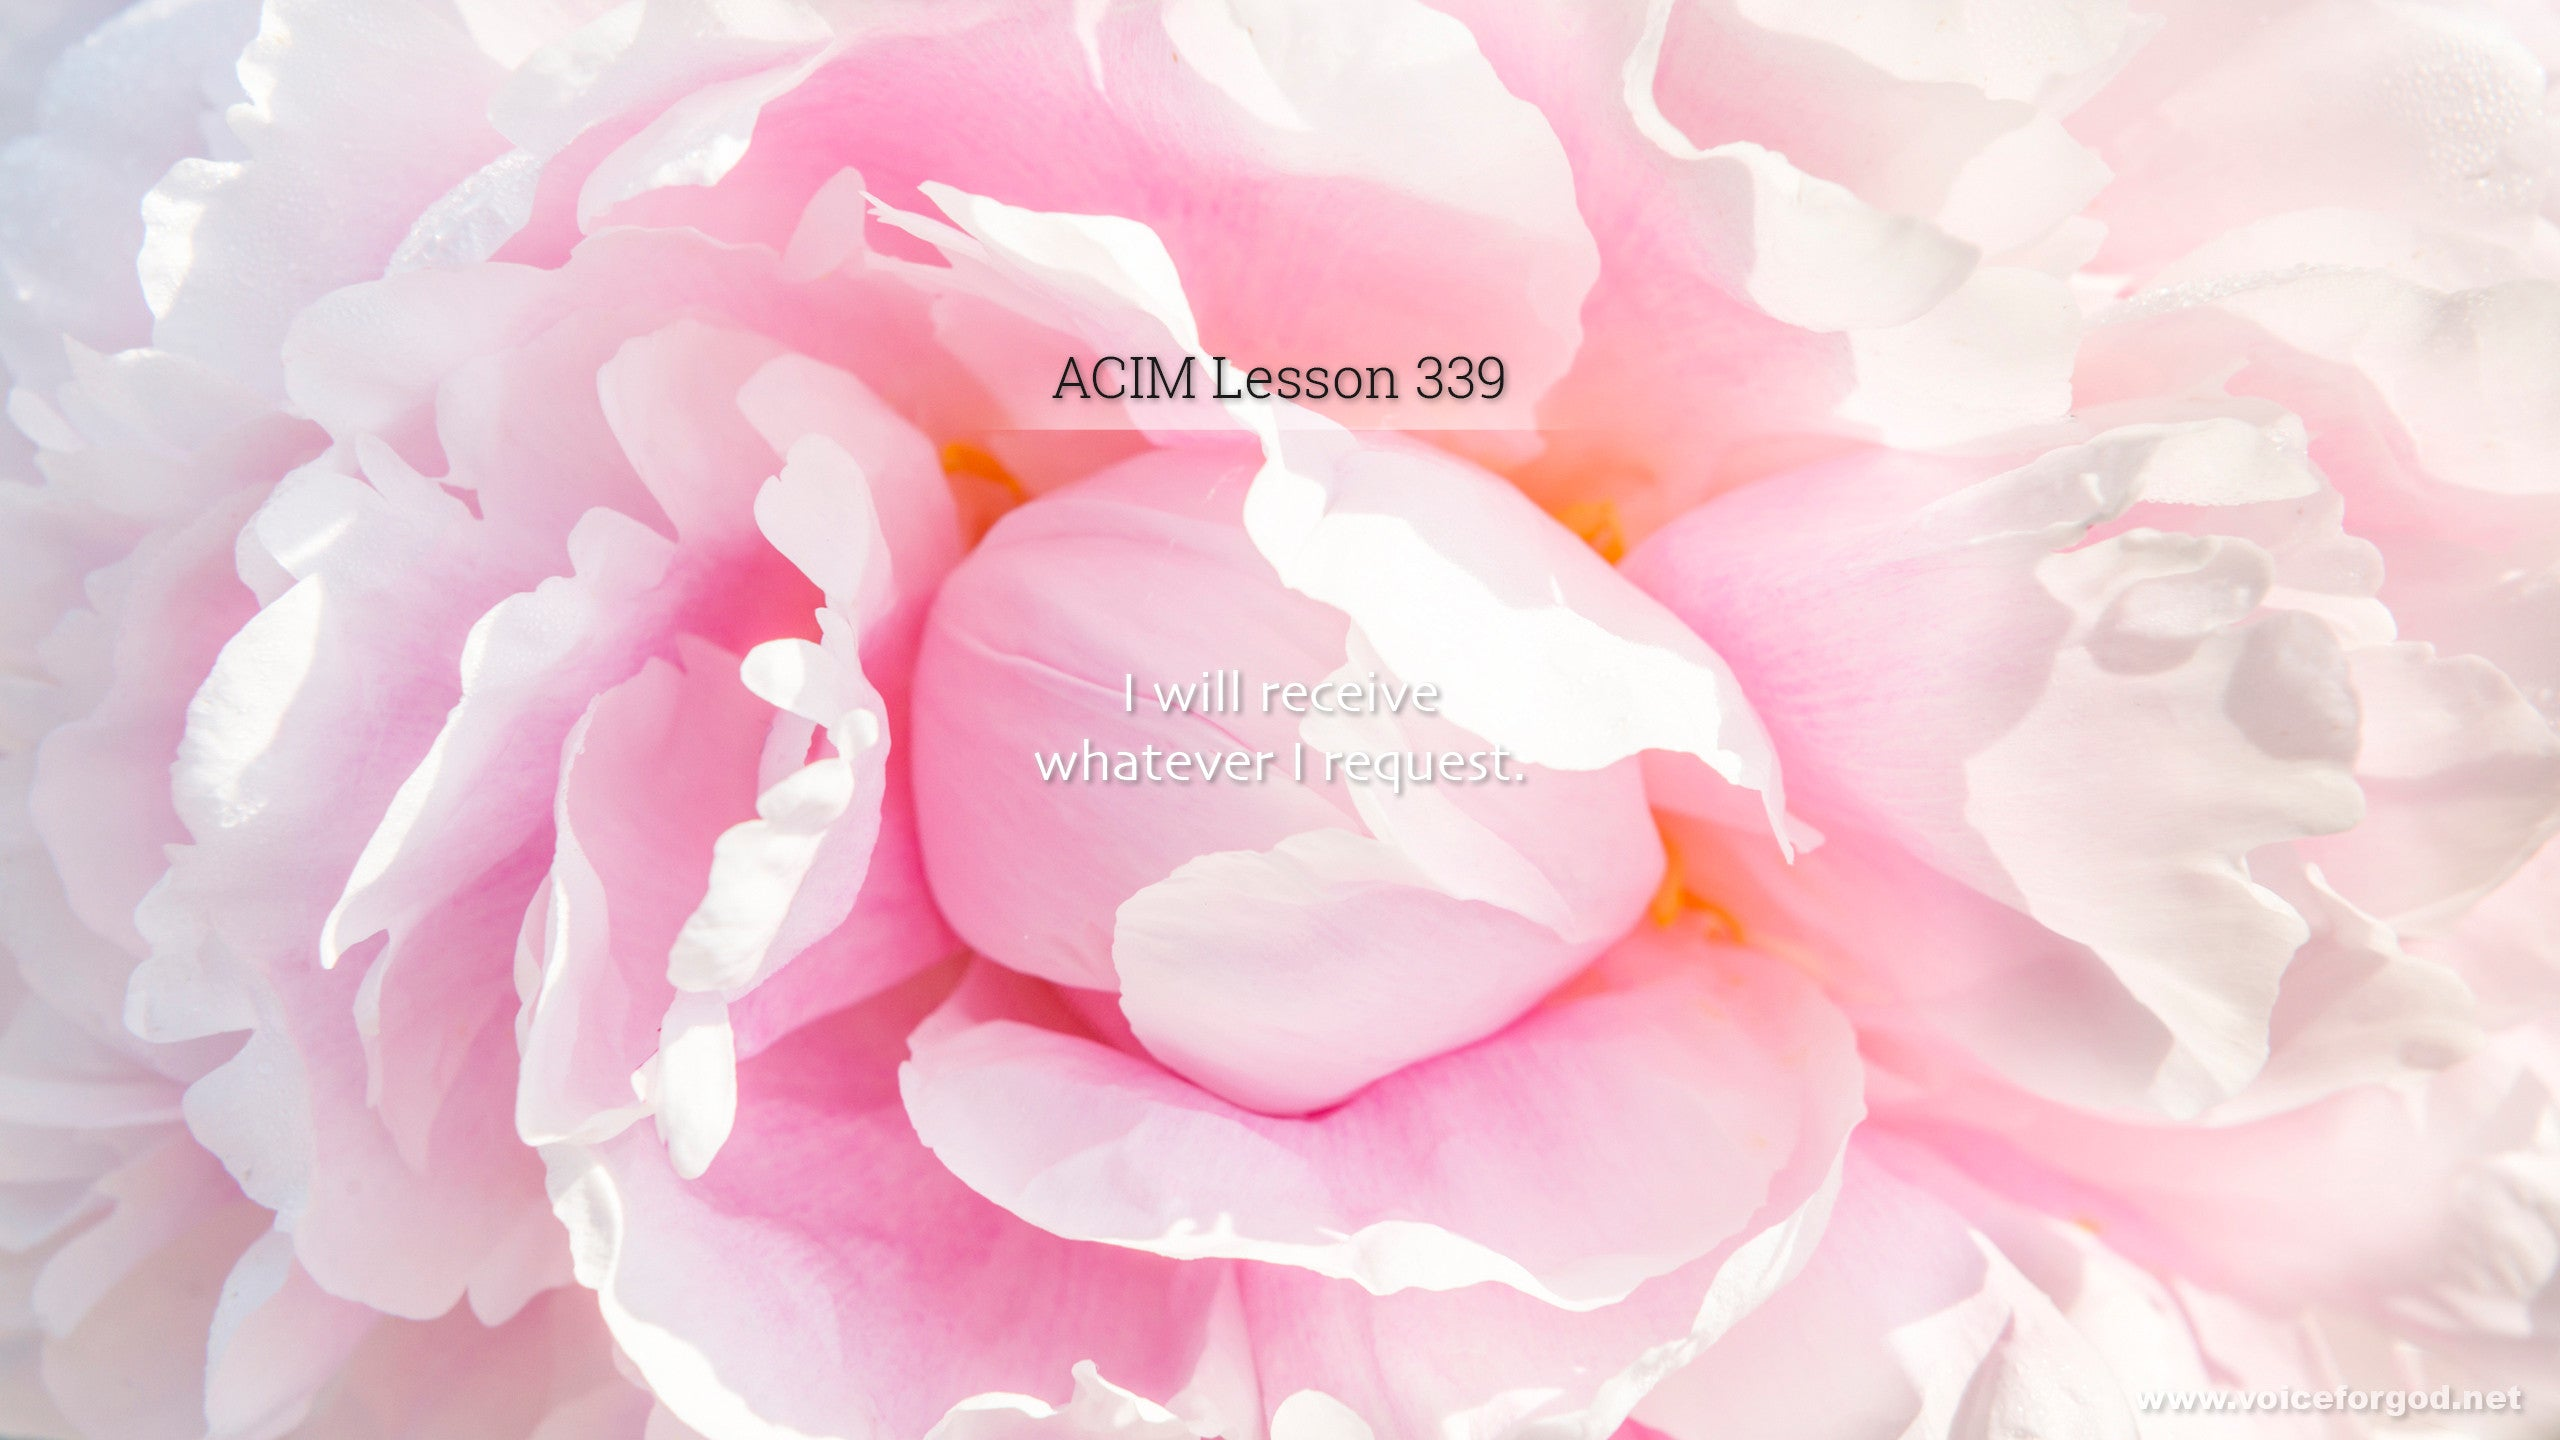 ACIM Lesson 339 - A Course in Miracles Workbook Lesson 339